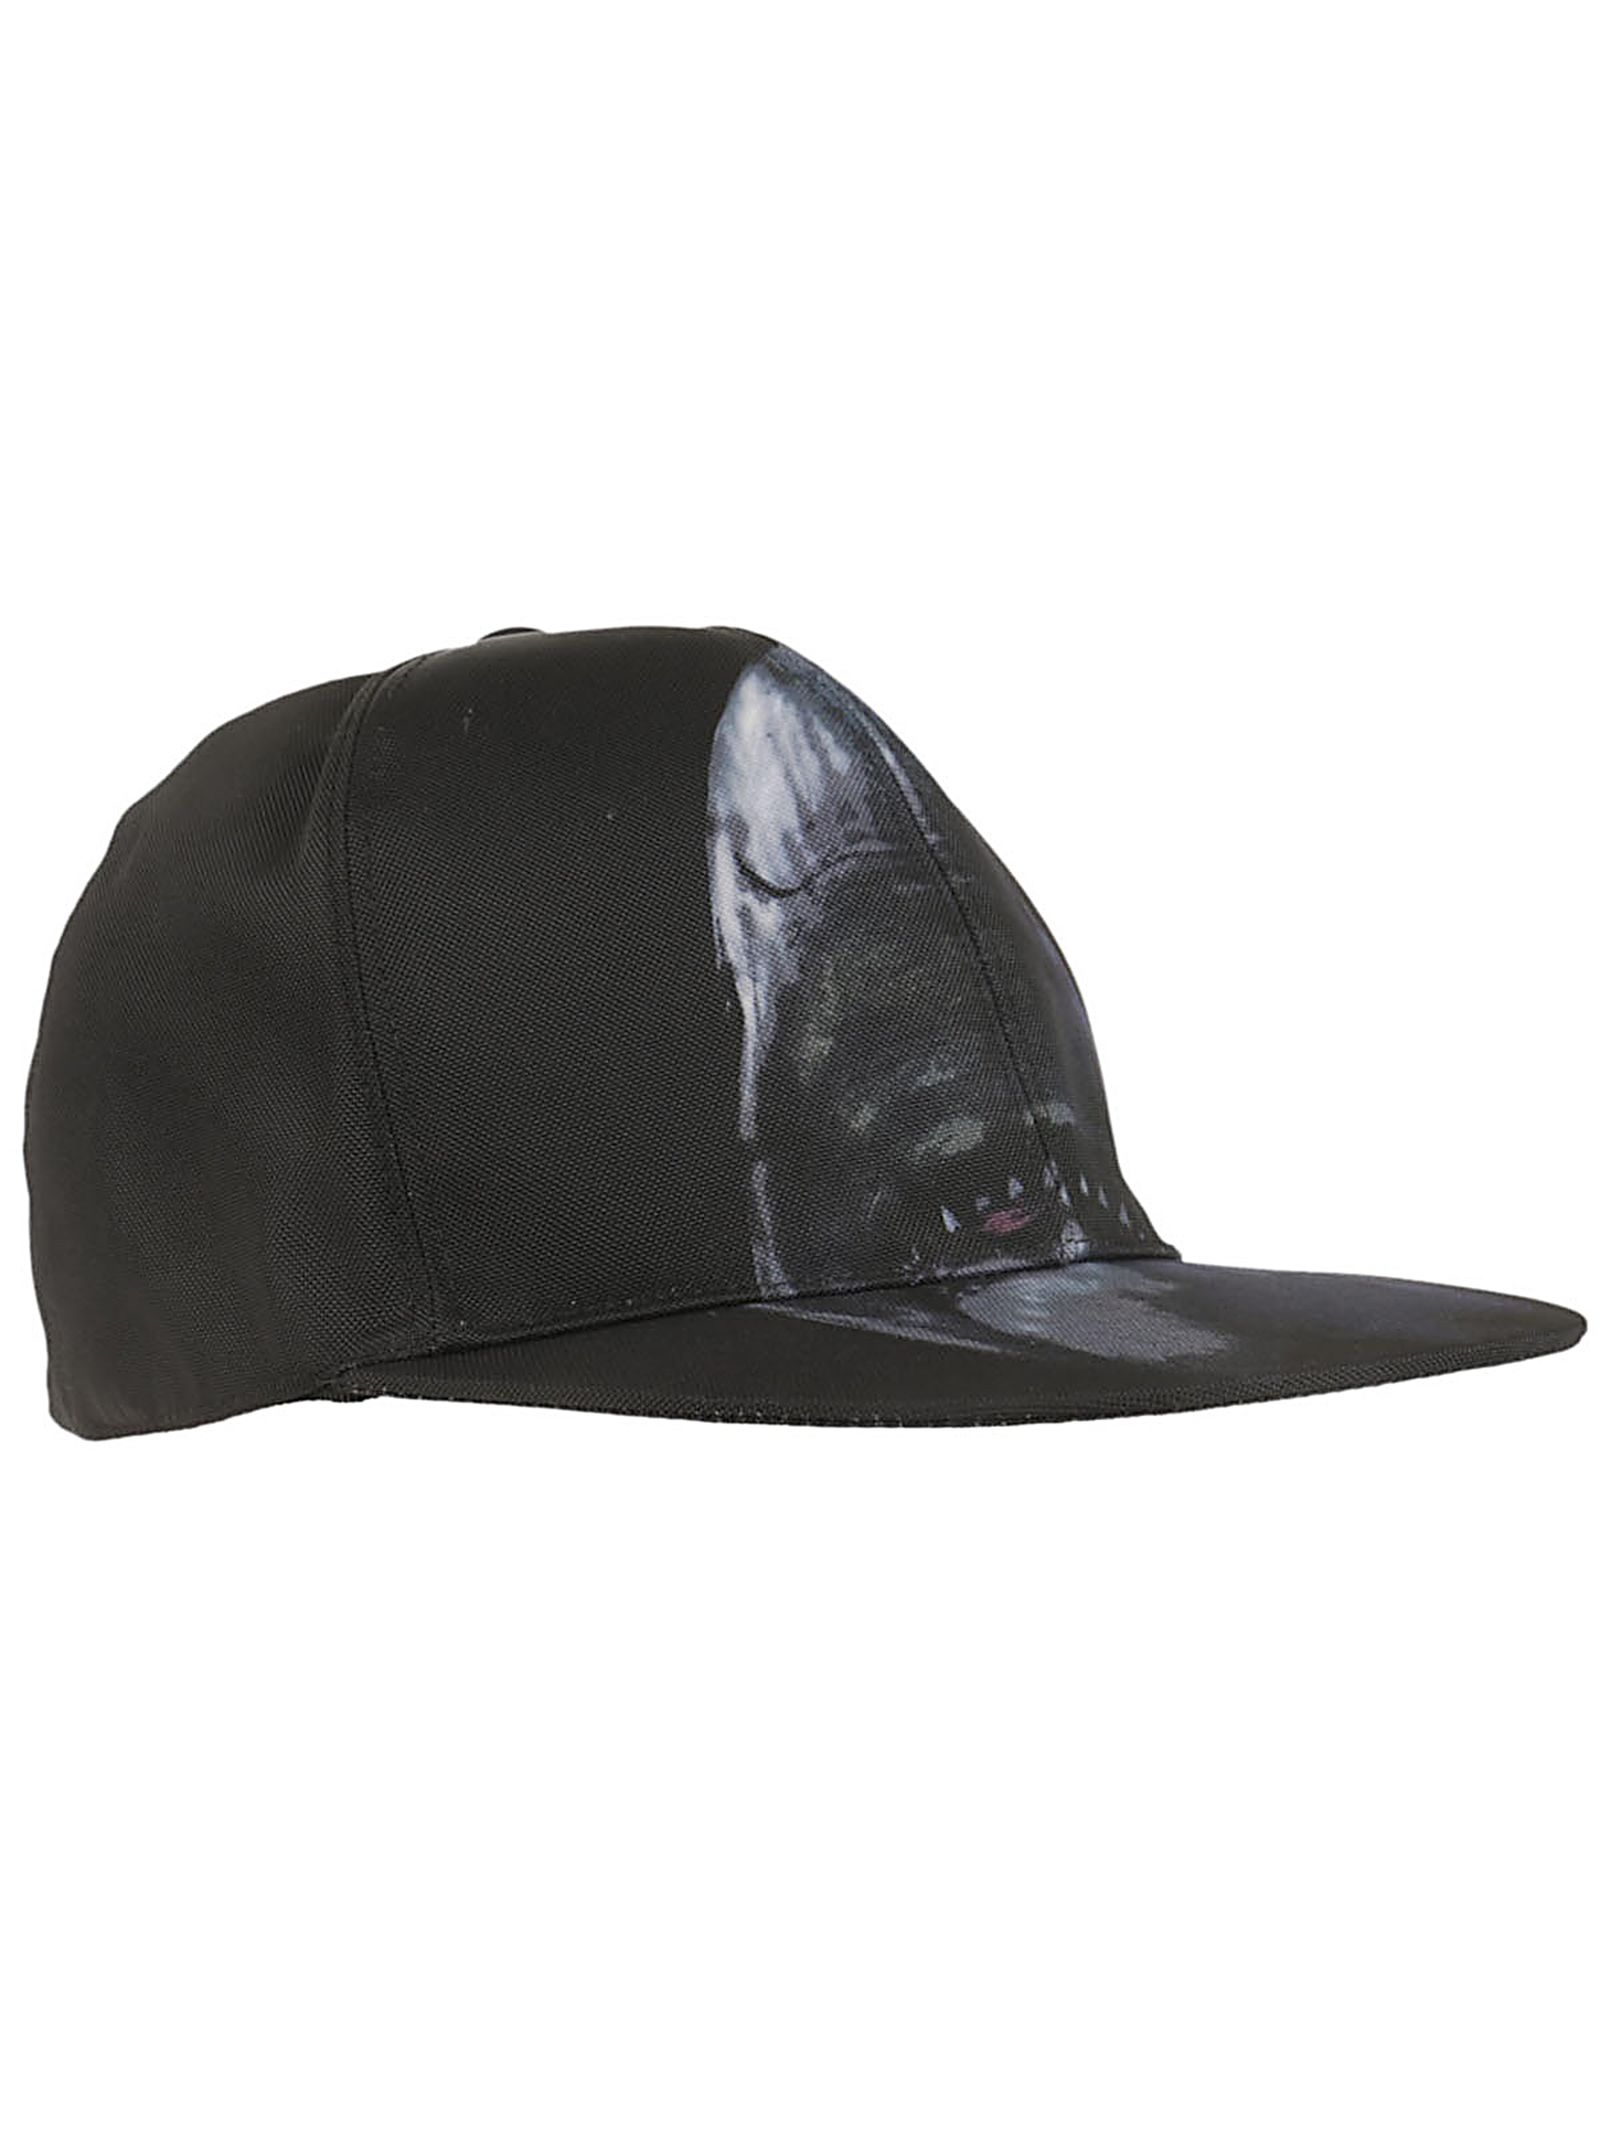 Givenchy Shark Print Cap